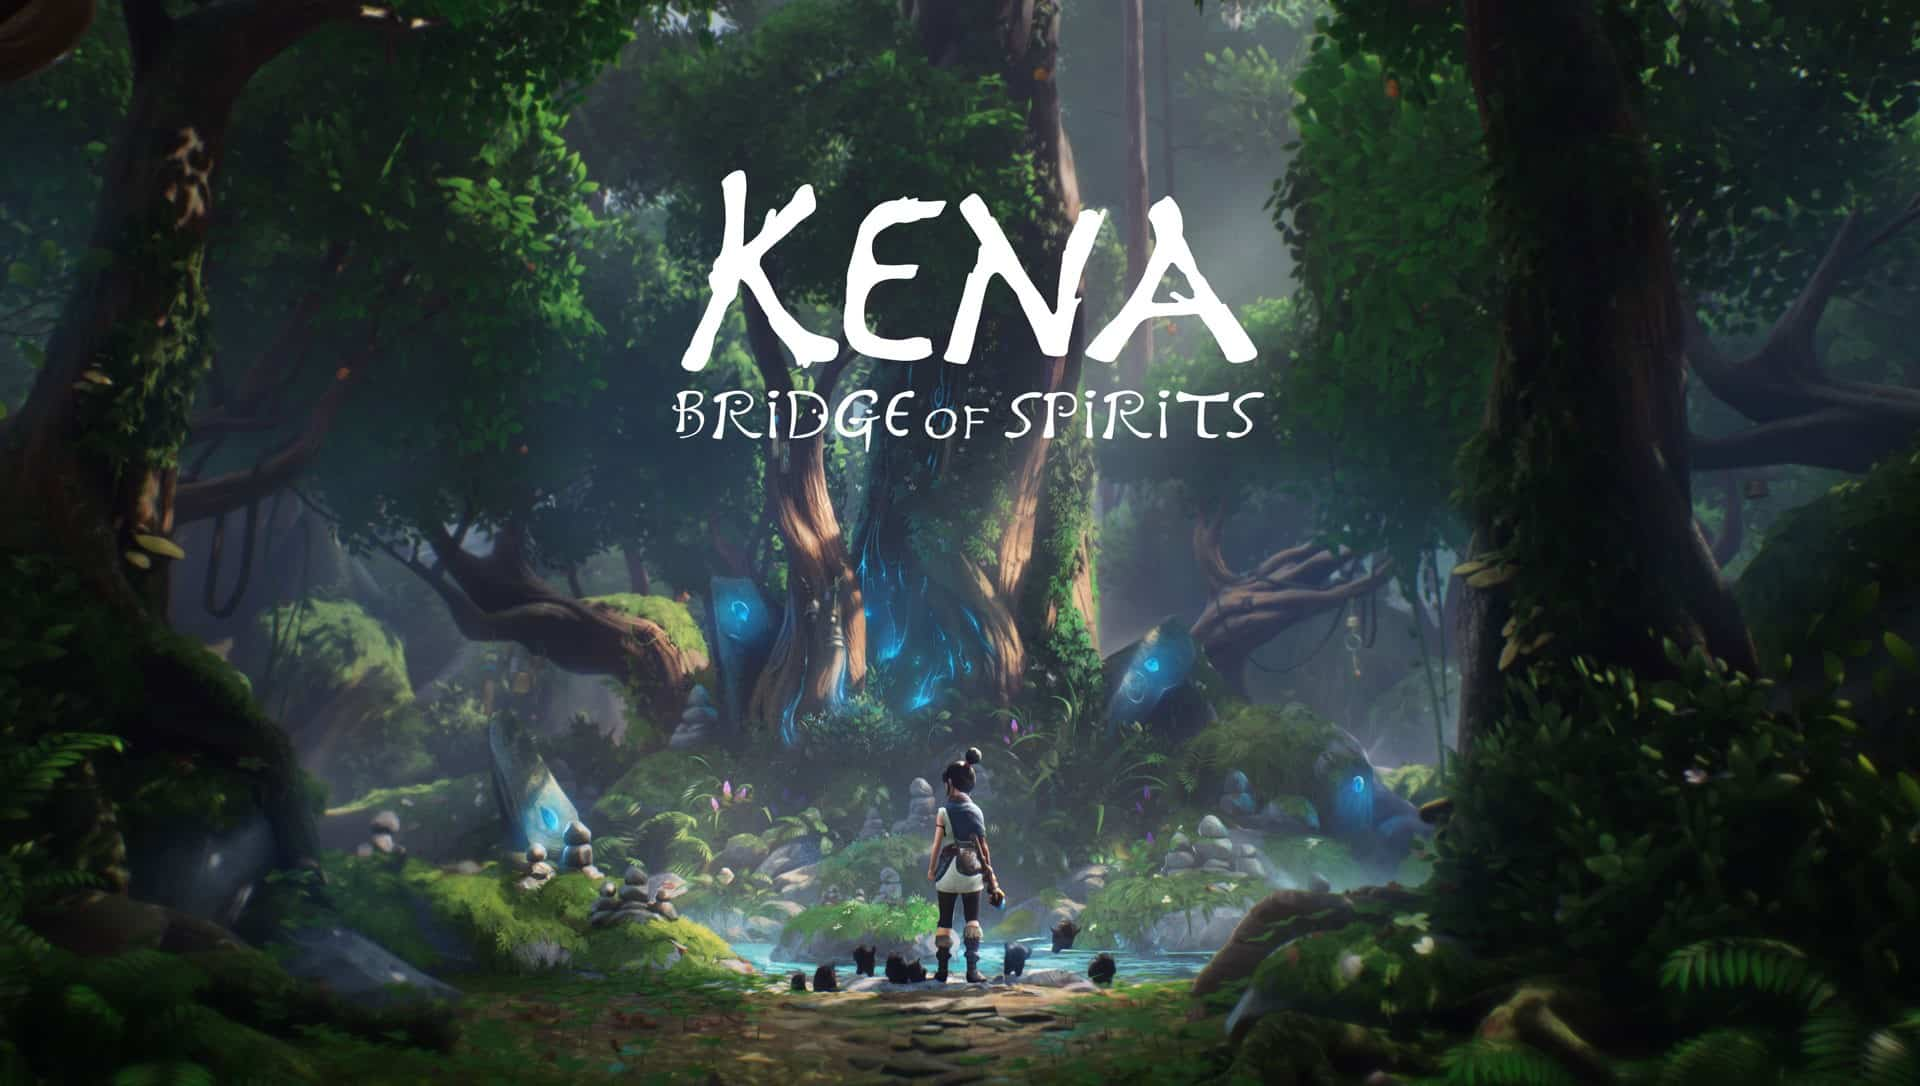 Kena: Bridge of Spirits Free PS4 to PS5 Upgrade Confirmed - GLITCHED